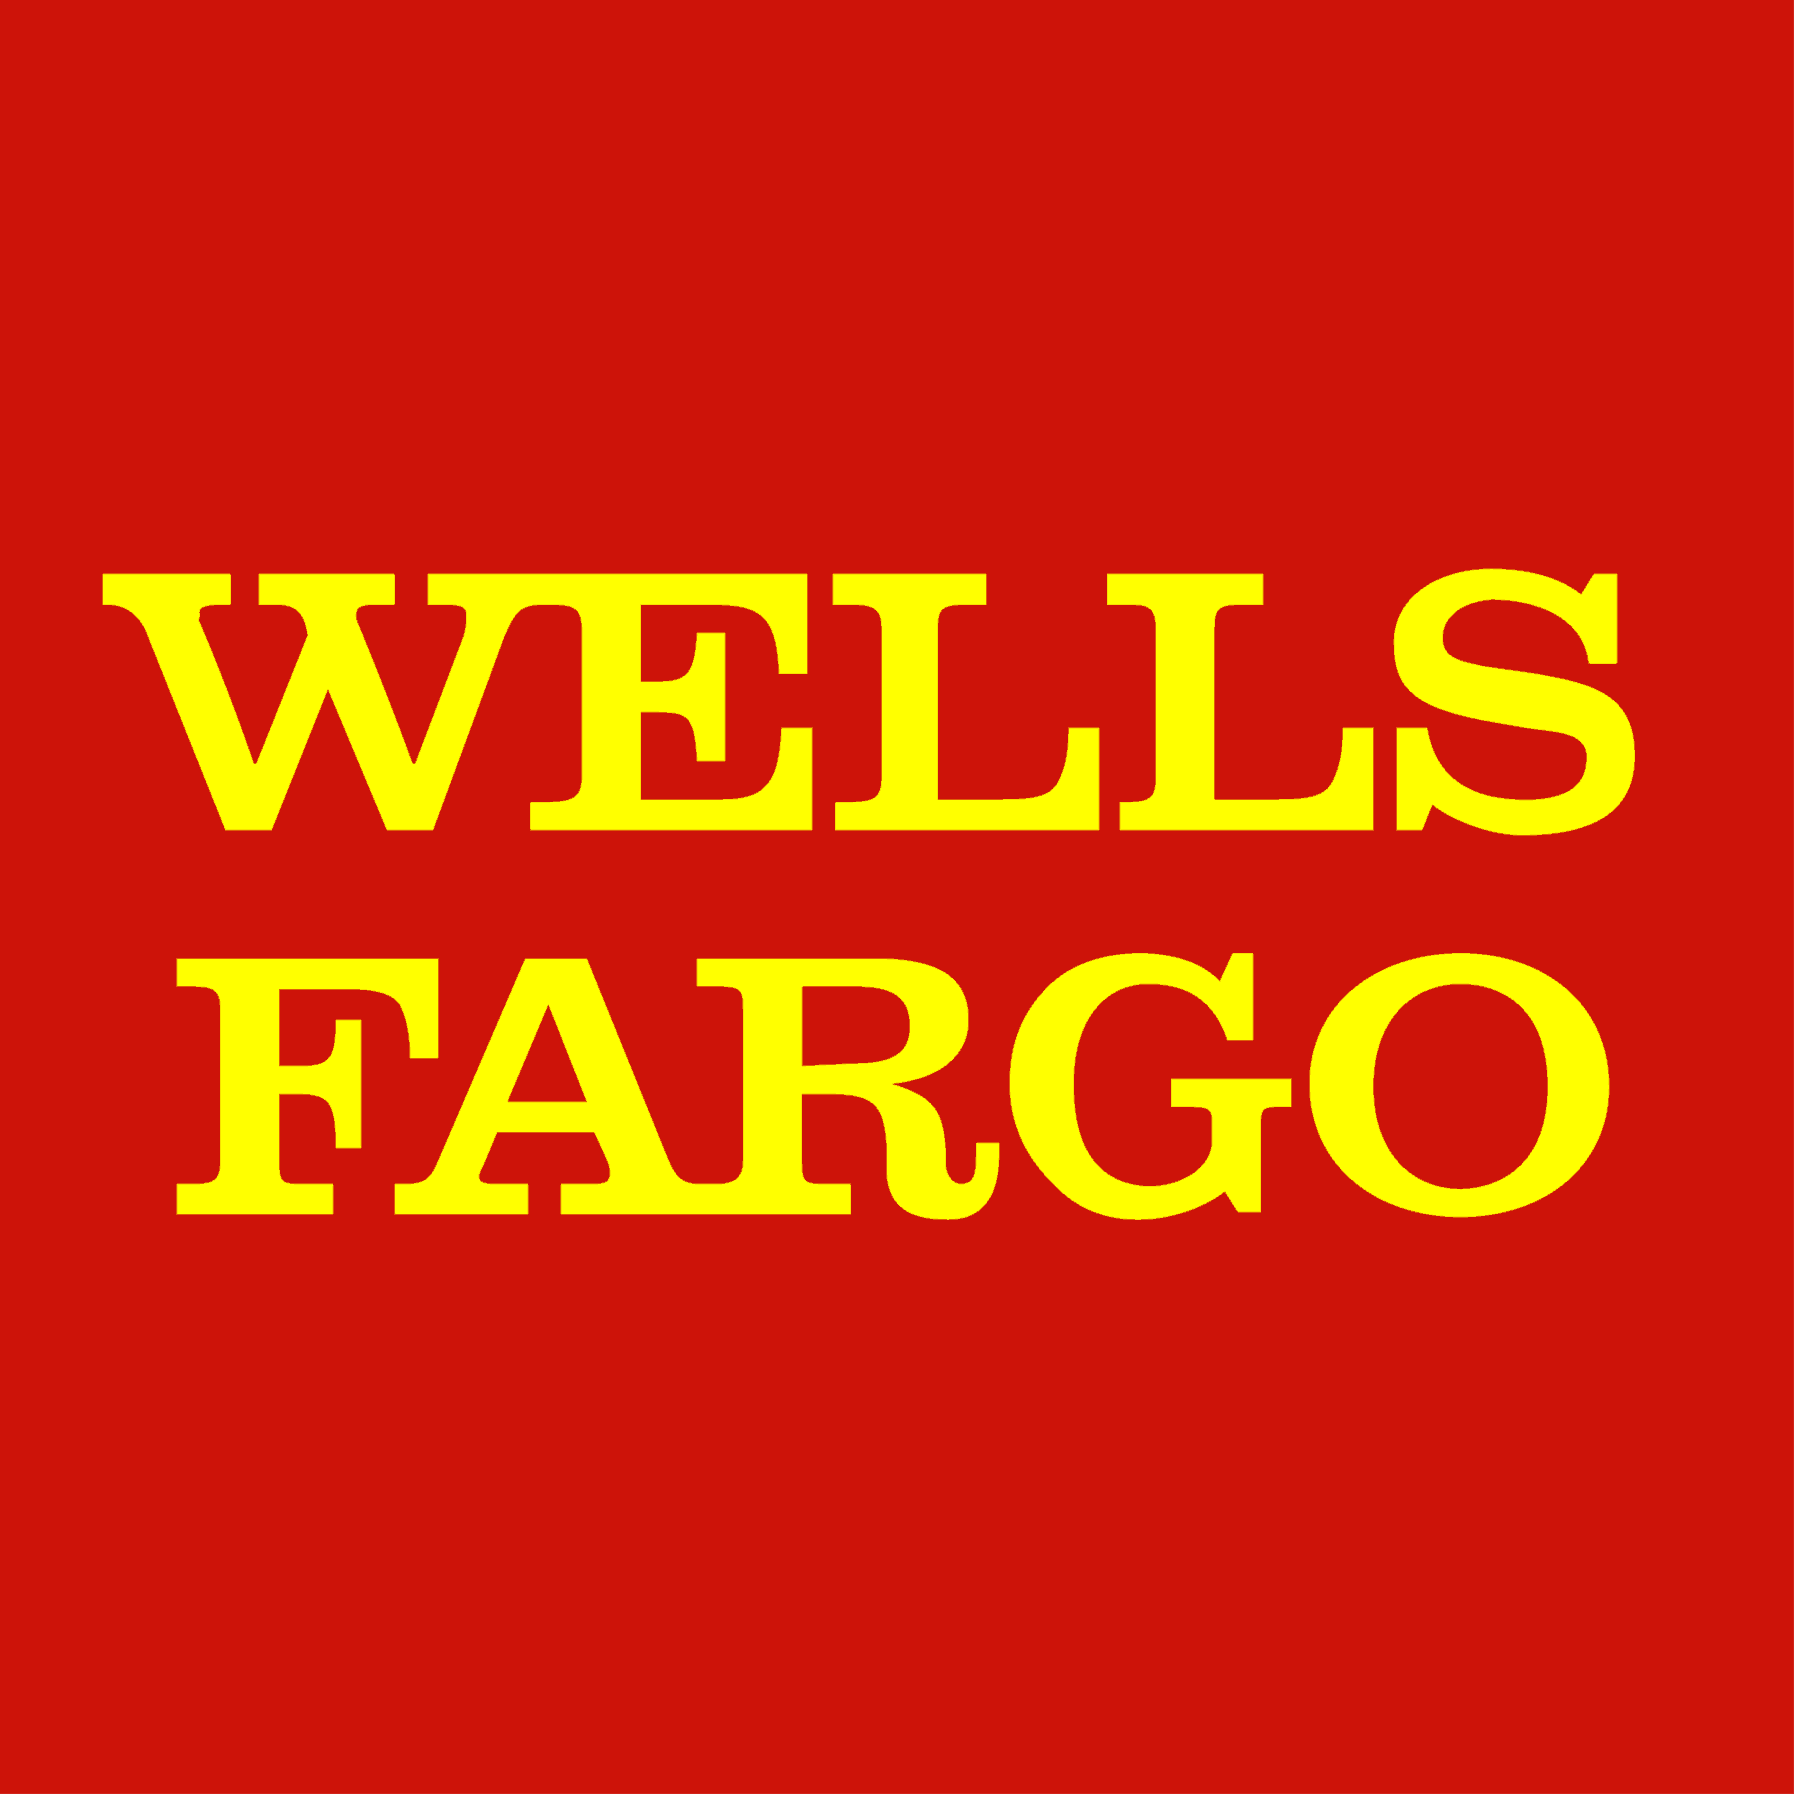 The Best Personal Loan Companies And Online Lenders In 2020 In 2020 Wells Fargo Loan Company Wells Fargo Logo